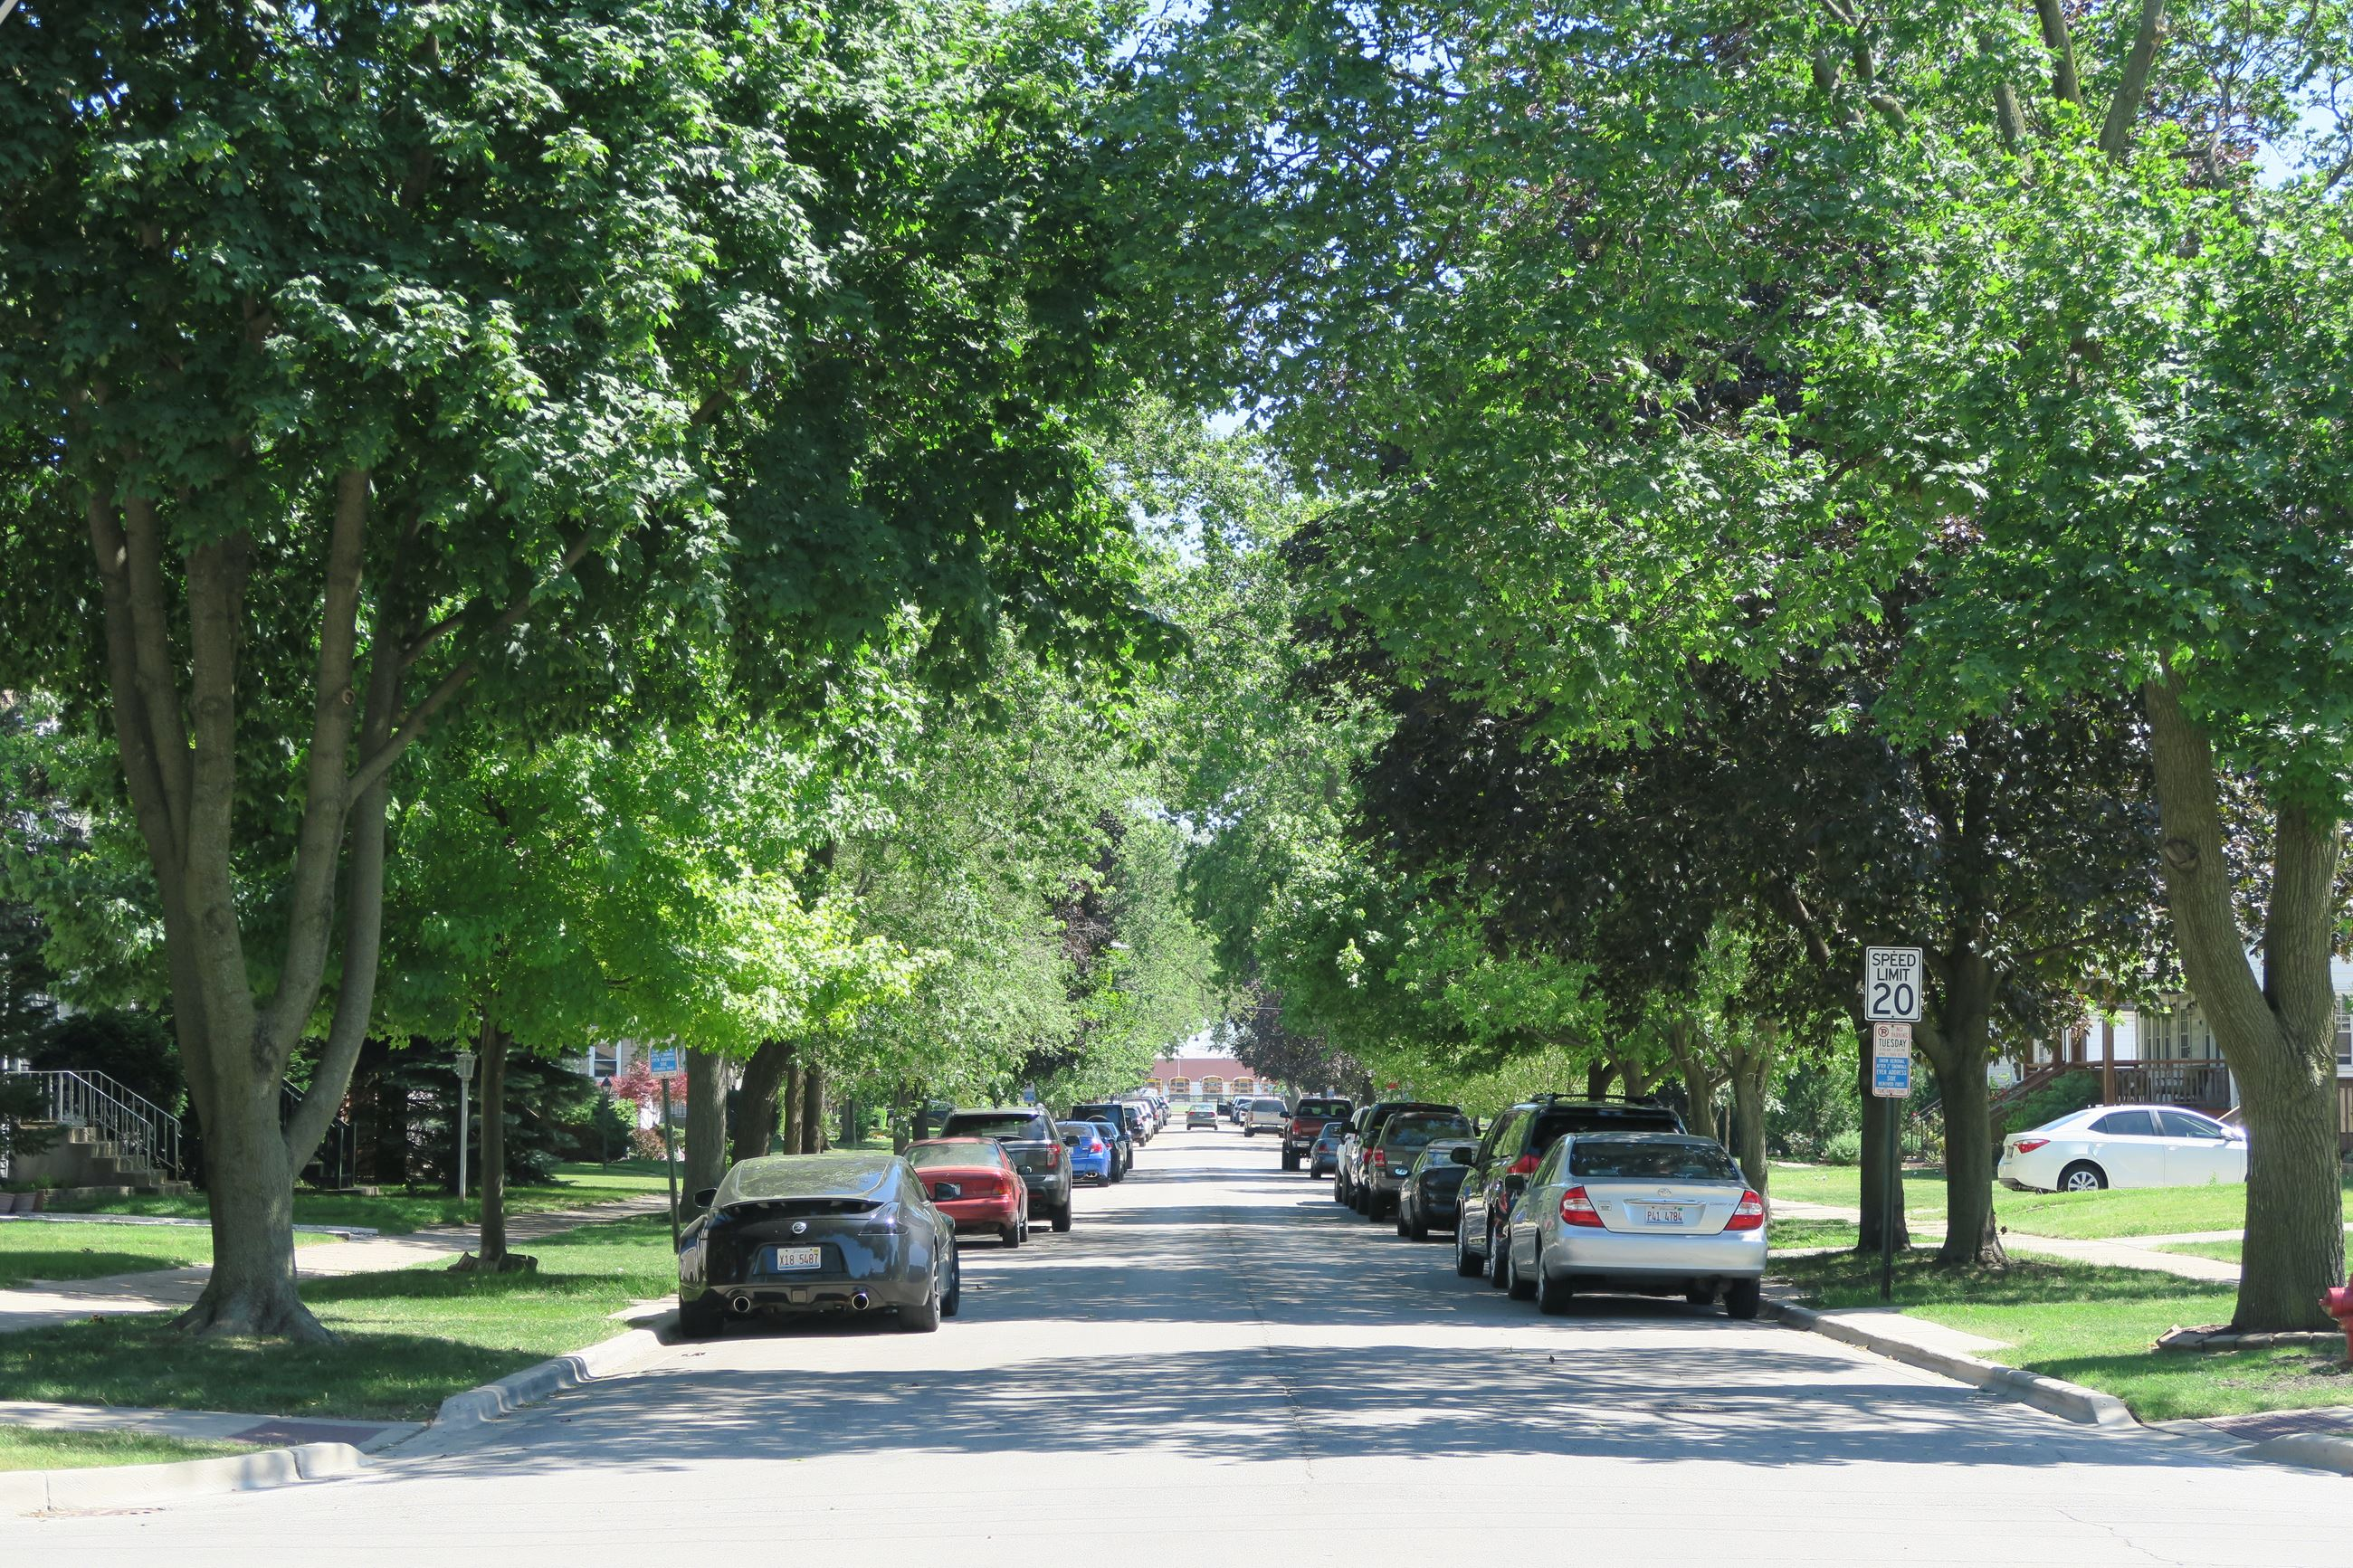 Shade covered street in summertime with cars parked along each side